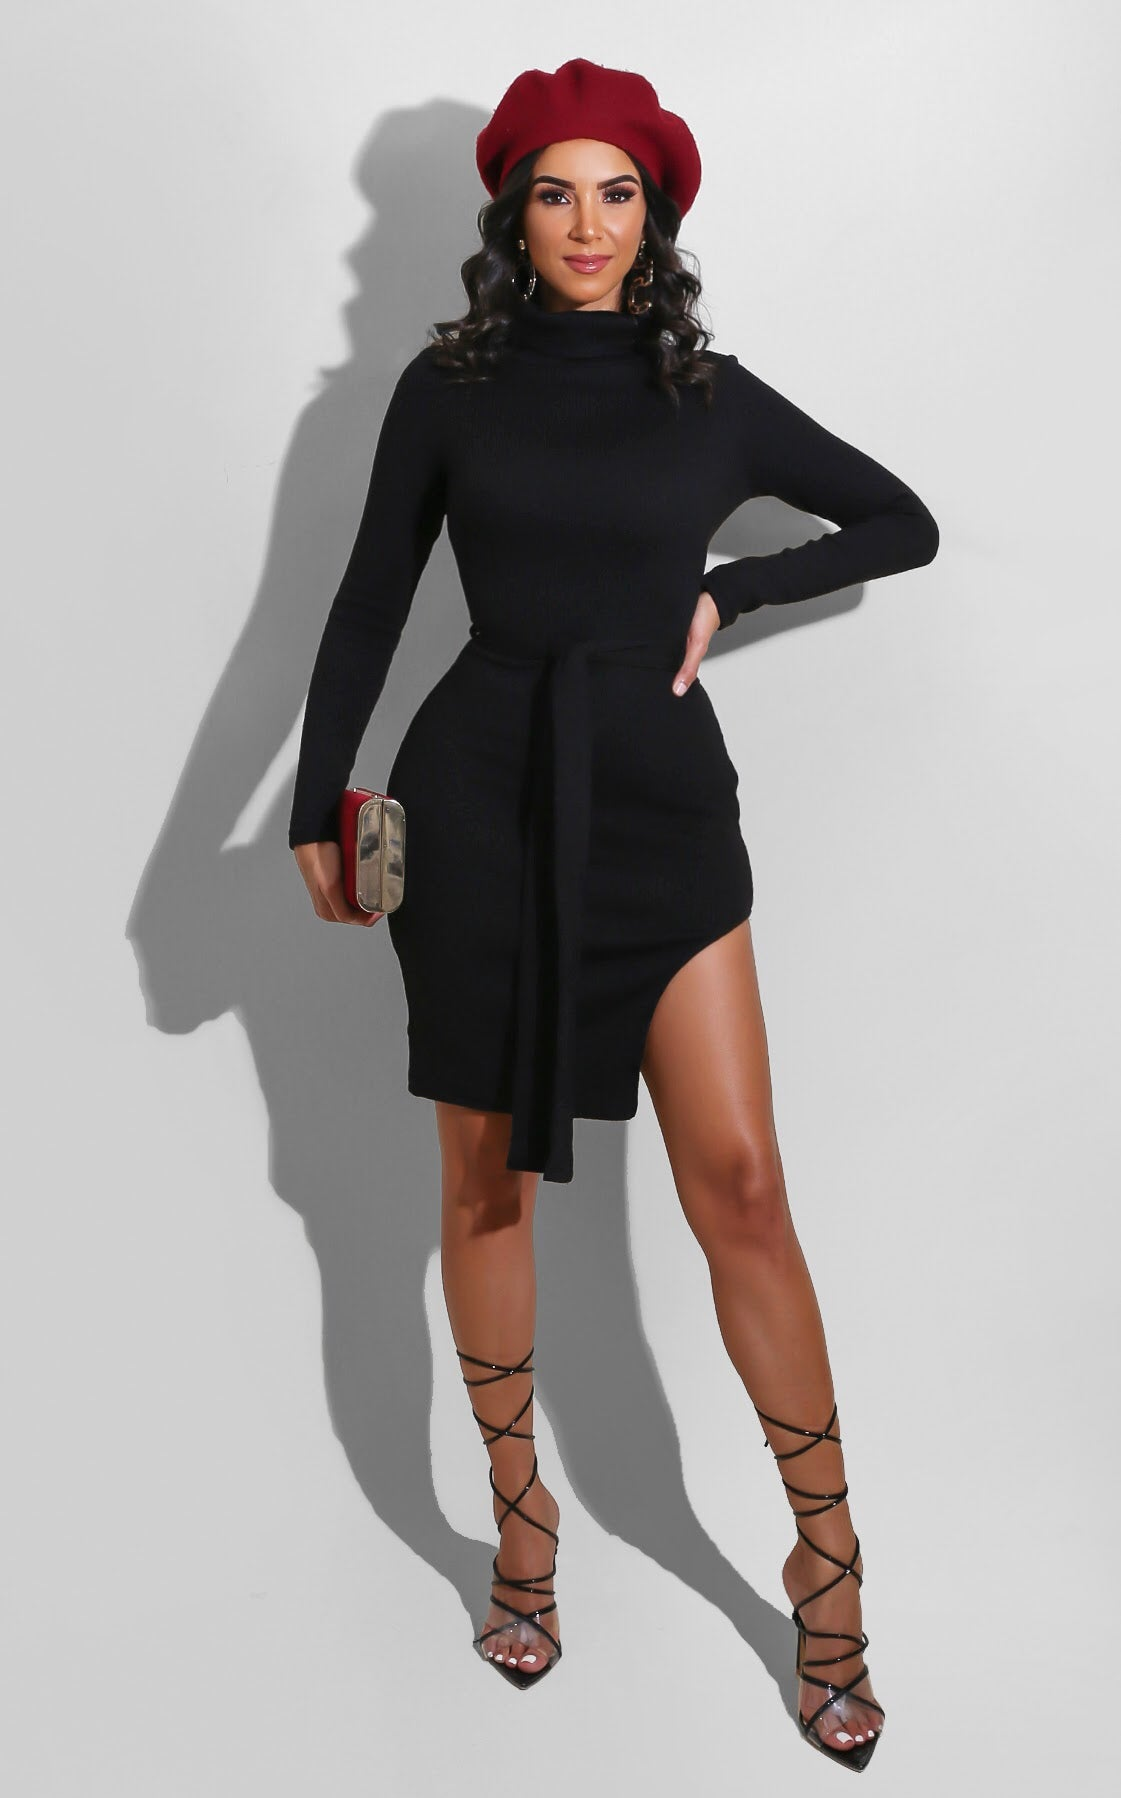 Shantel Sweater Dress Black